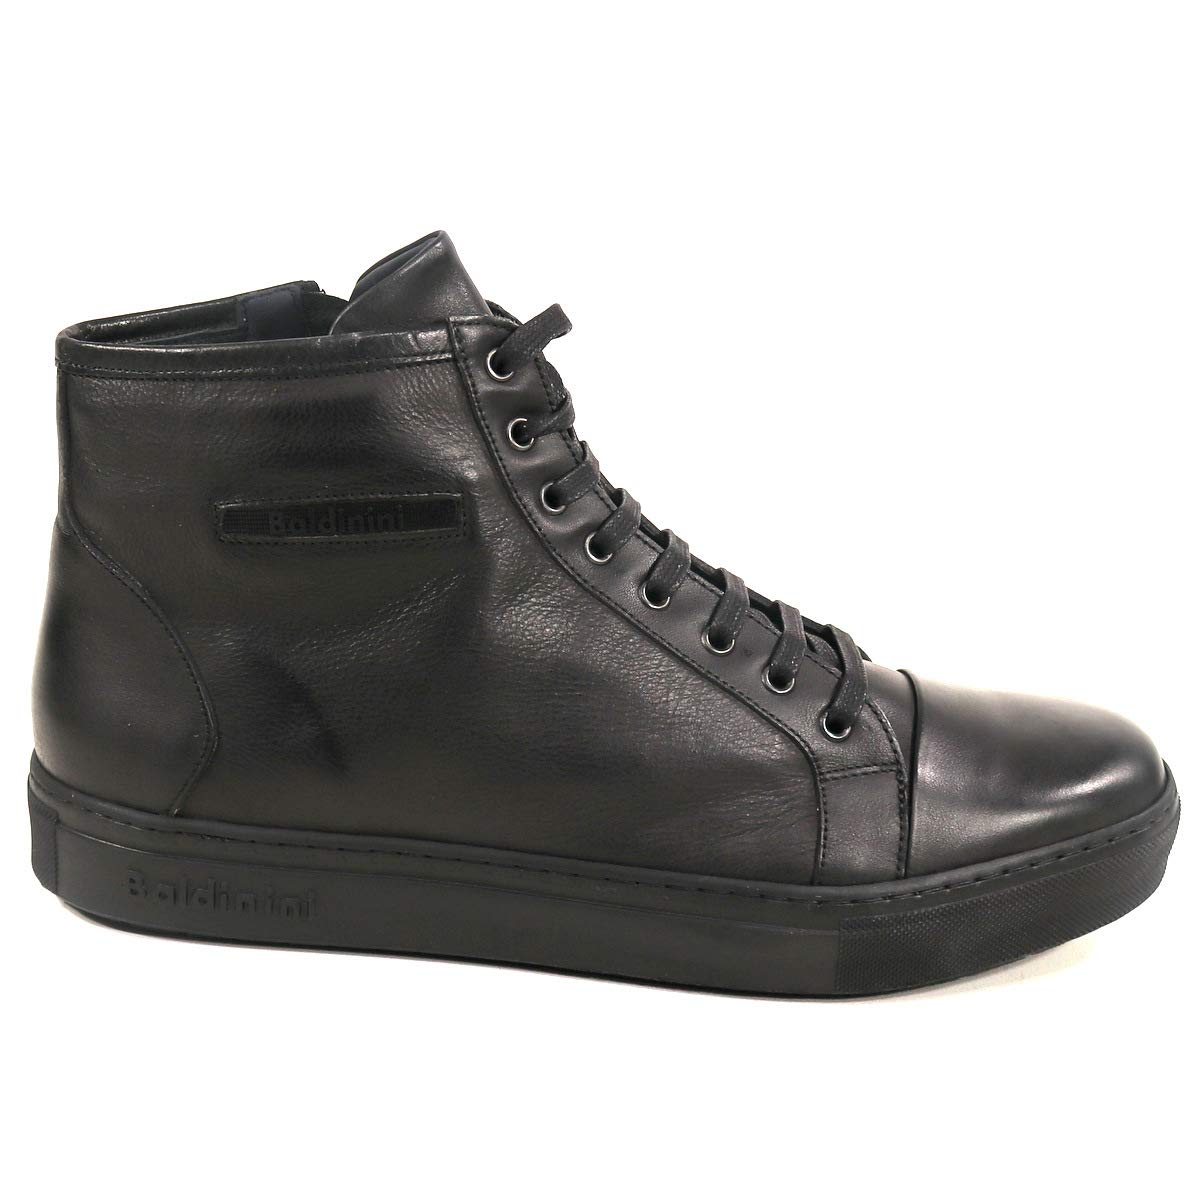 d58b445cb Amazon.com | BALDININI 🇮🇹 Italian Shoes 👞 Men Black Shoes Leather and  Suede Winter. Mens Casual Shoes | Fashion Sneakers